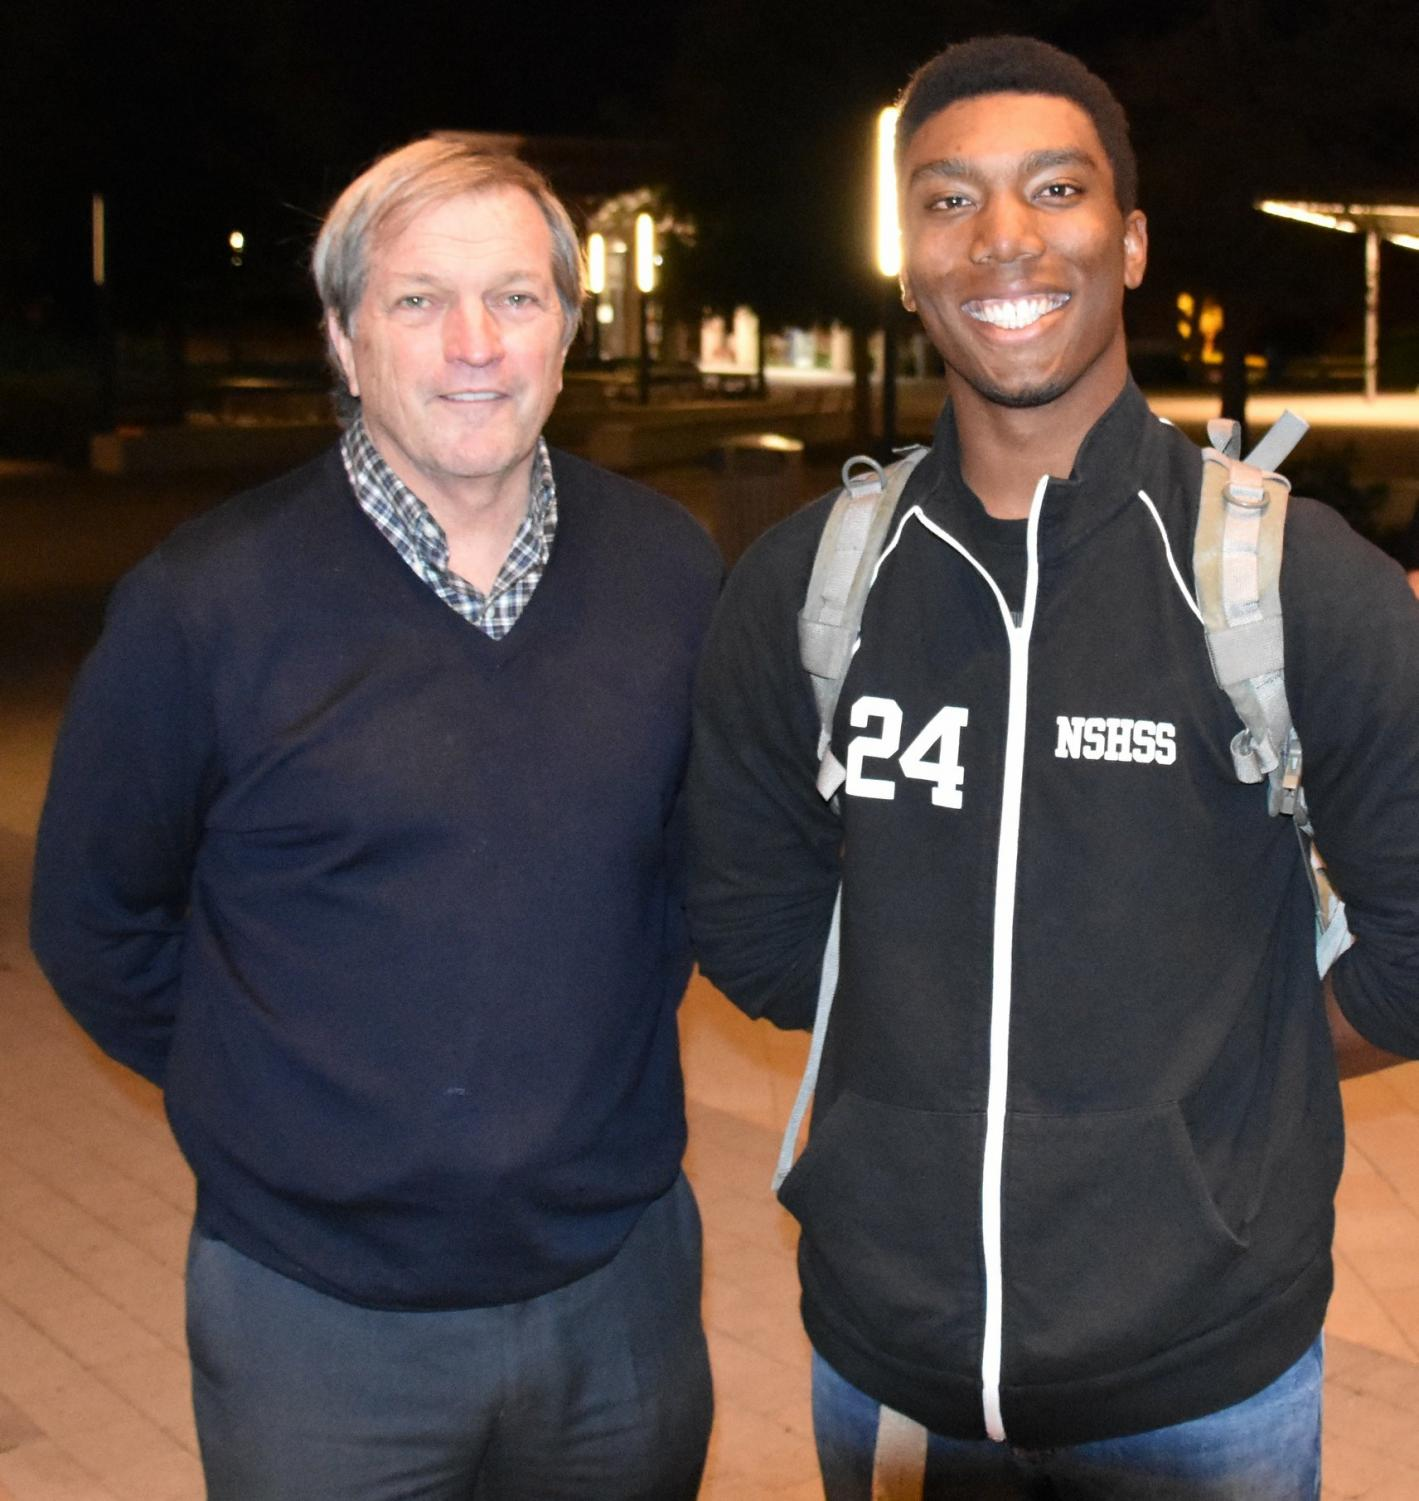 Photo of Rep. Mark DeSaulnier and student Johnnie Conner during town hall at Diablo Valley College held on Feb. 12.  Photo courtesy of Rep. Mark DeSaulnier.